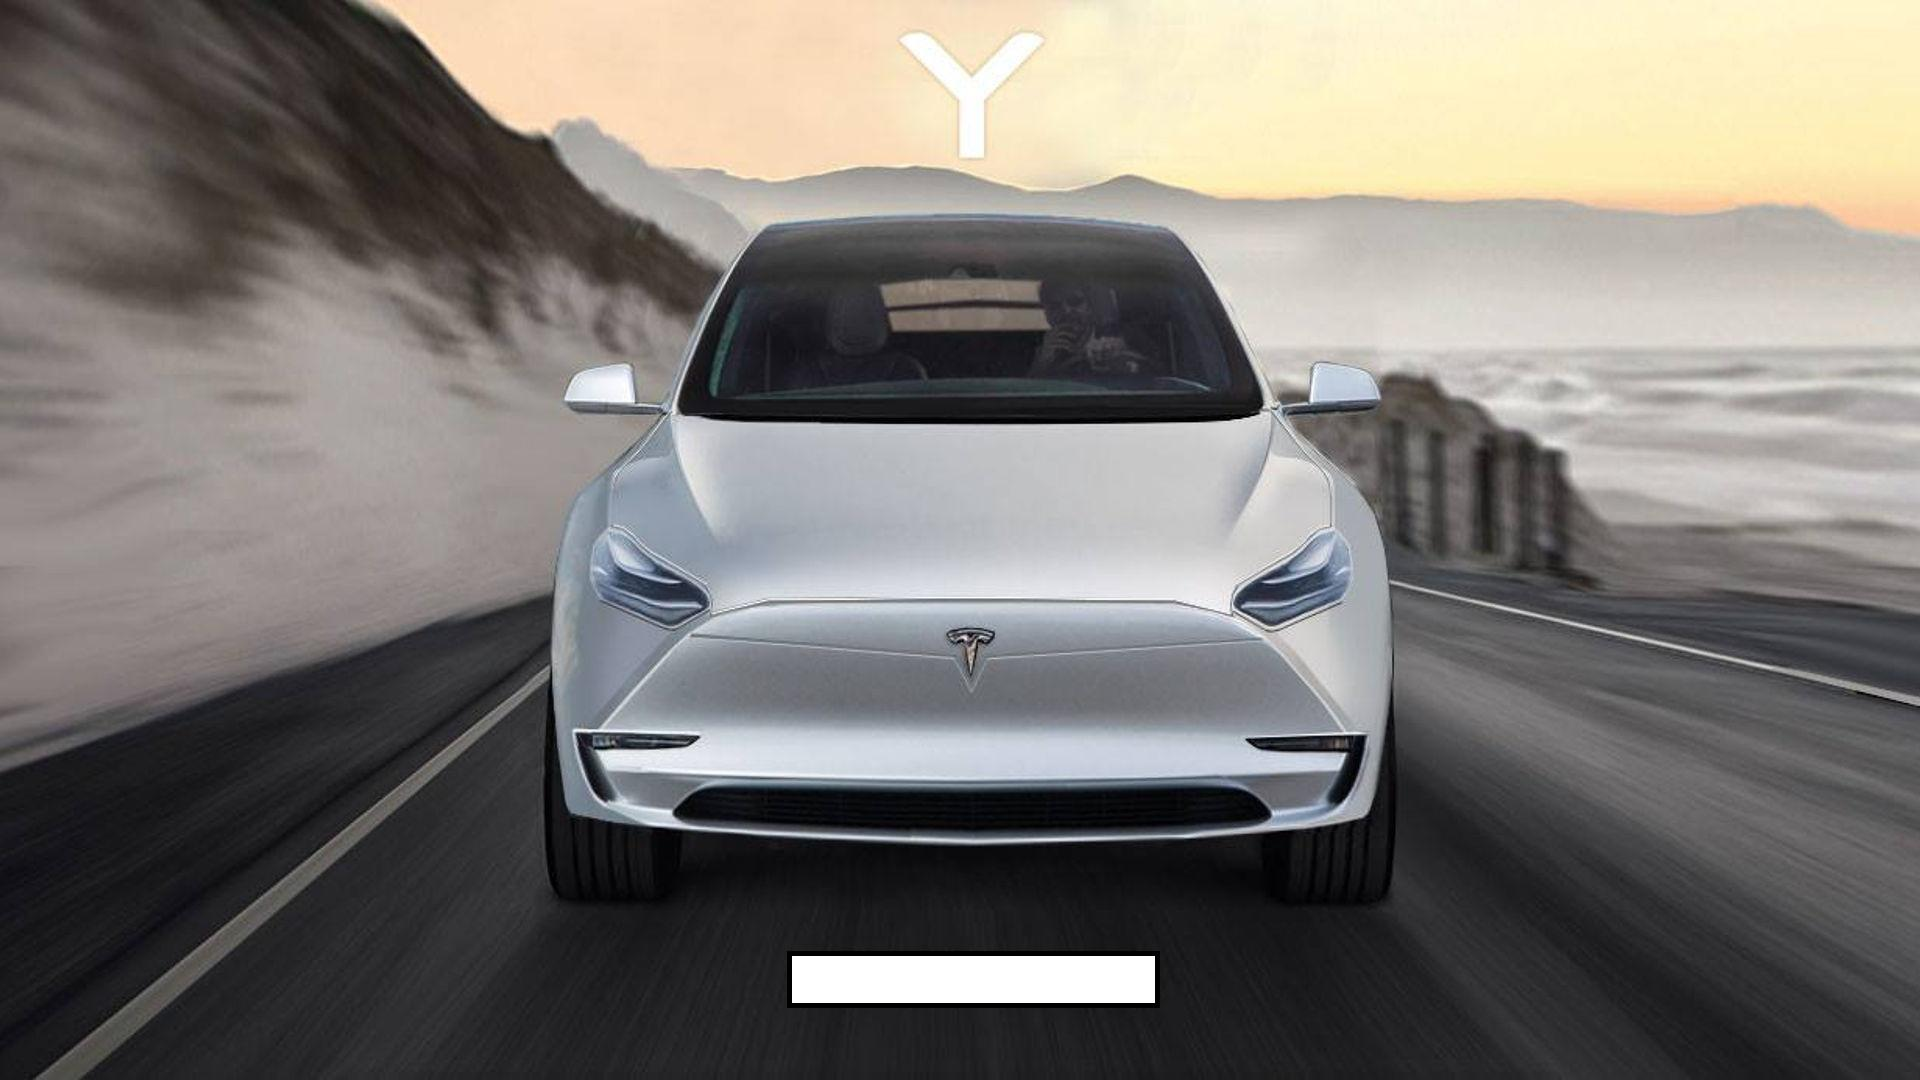 2019 Tesla Model Y SUV Rendering